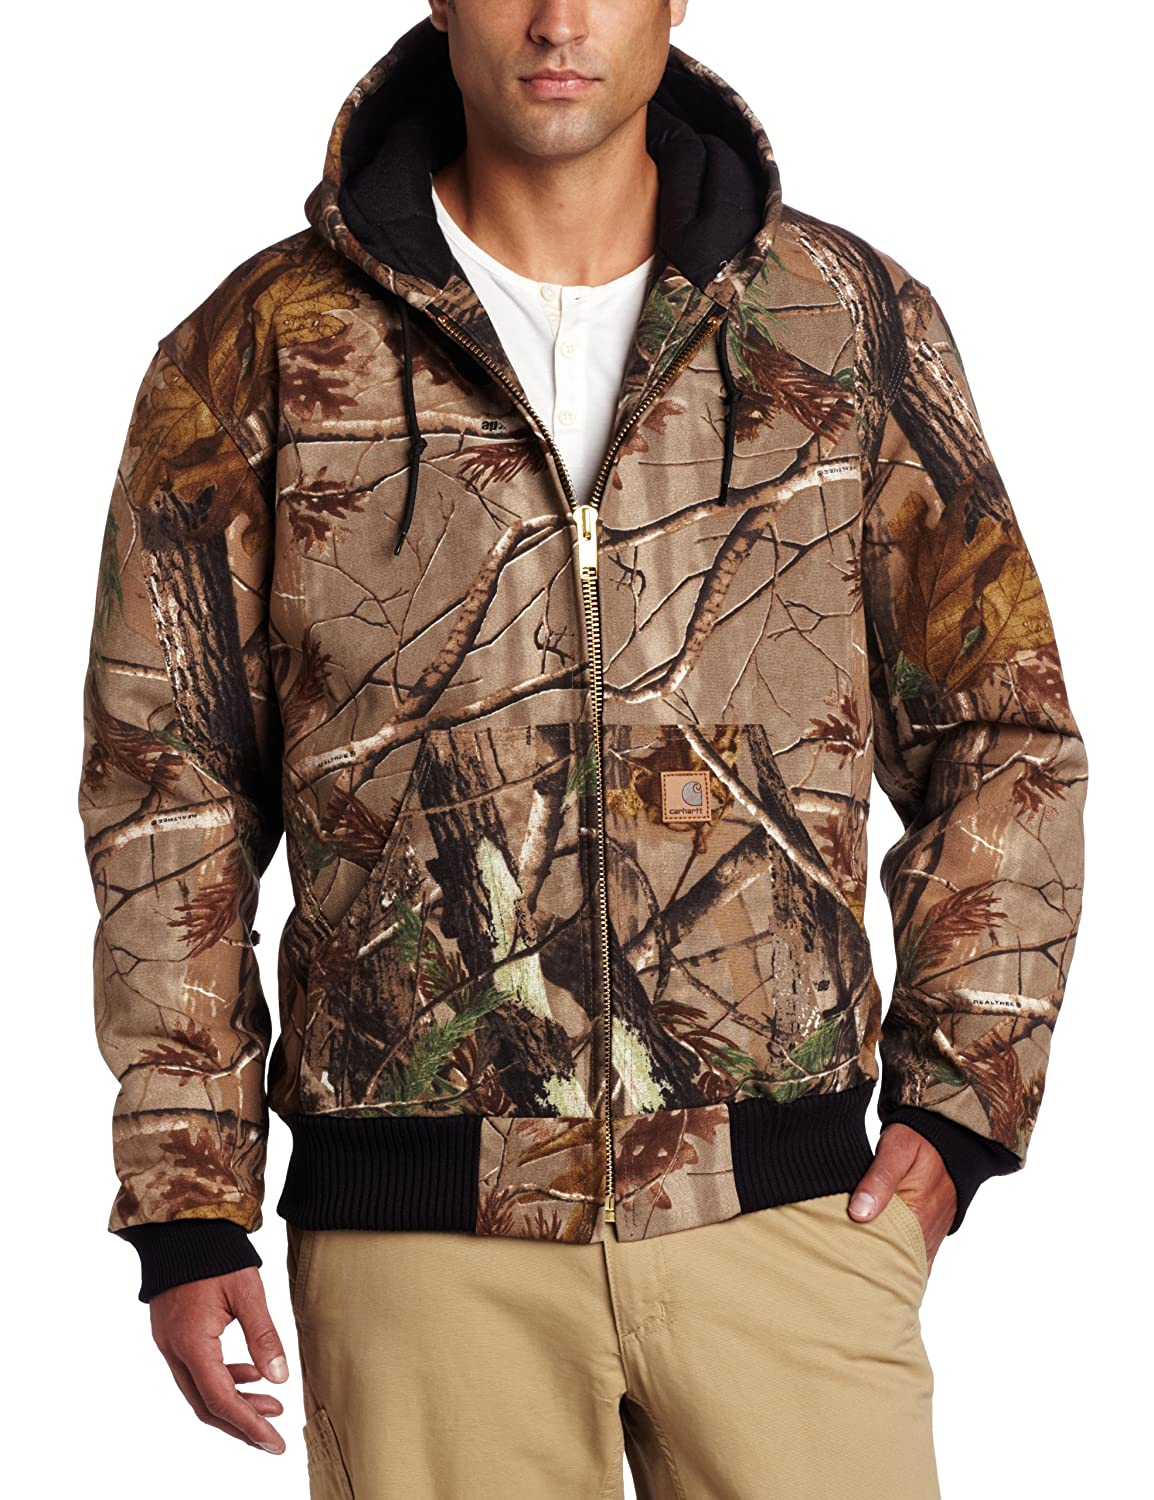 Carhartt Men's Quilted Flannel Lined Camo Active Jacket Carhartt Sportswear - Mens J221